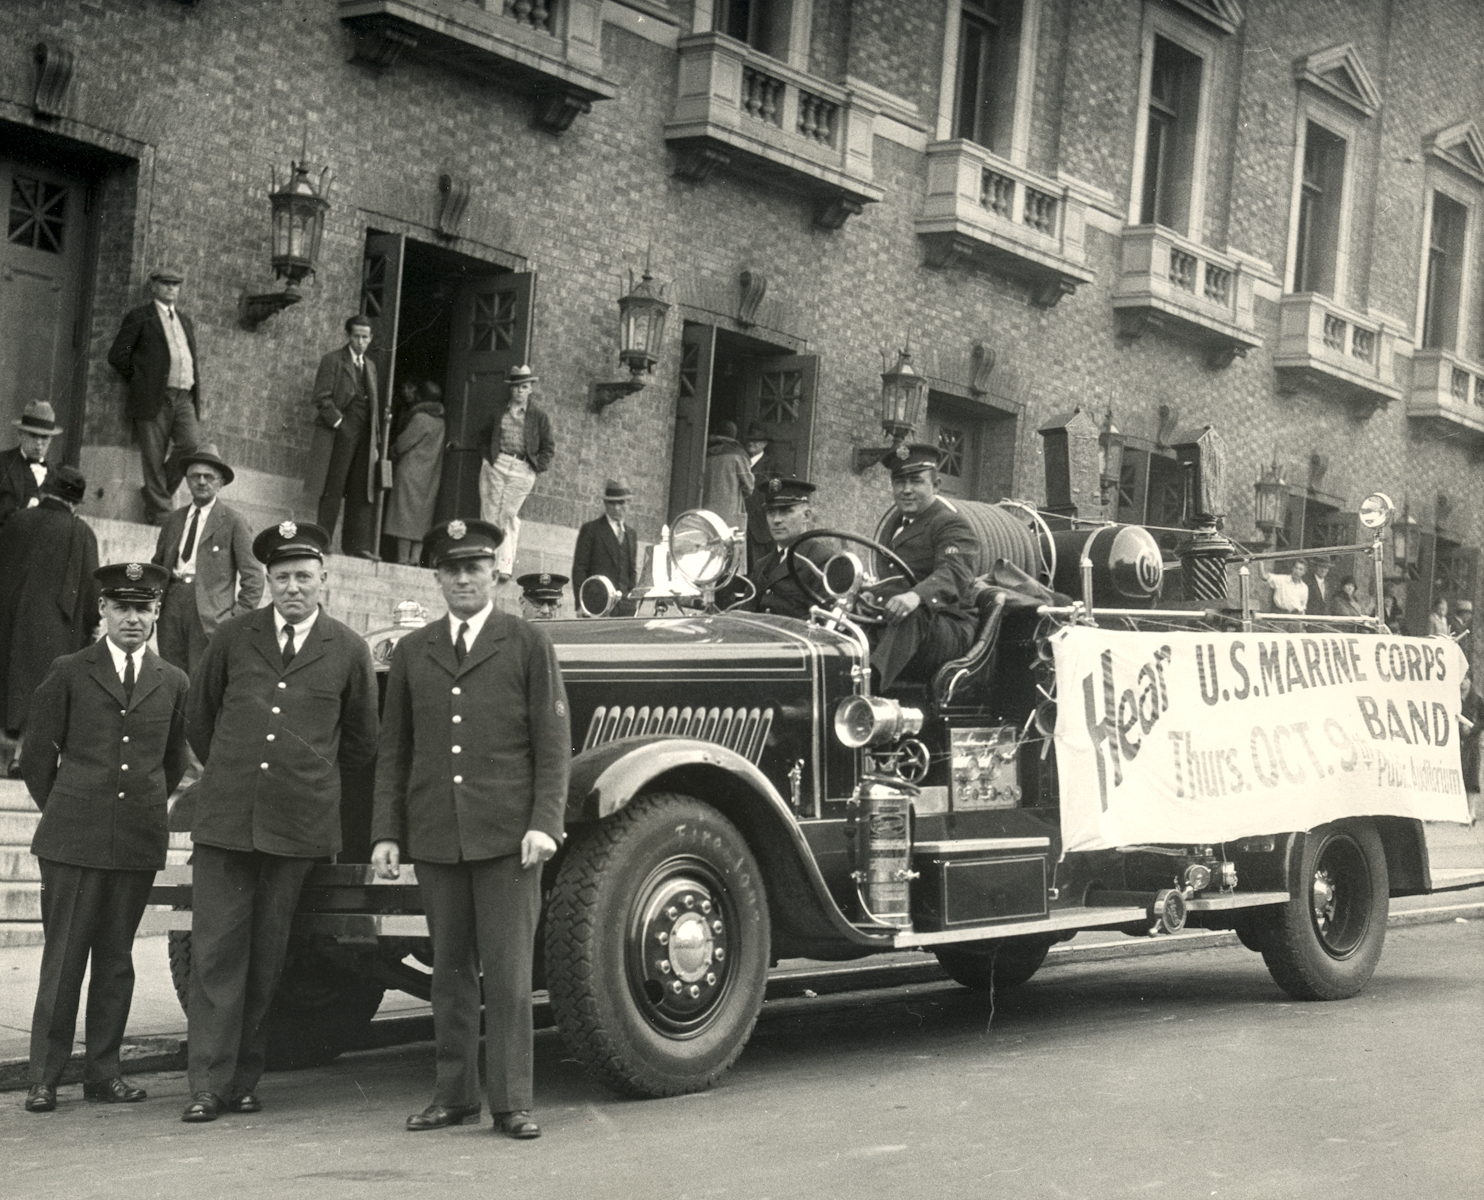 The Marine Band on tour in Portland, Ore., on Oct. 9, 1930